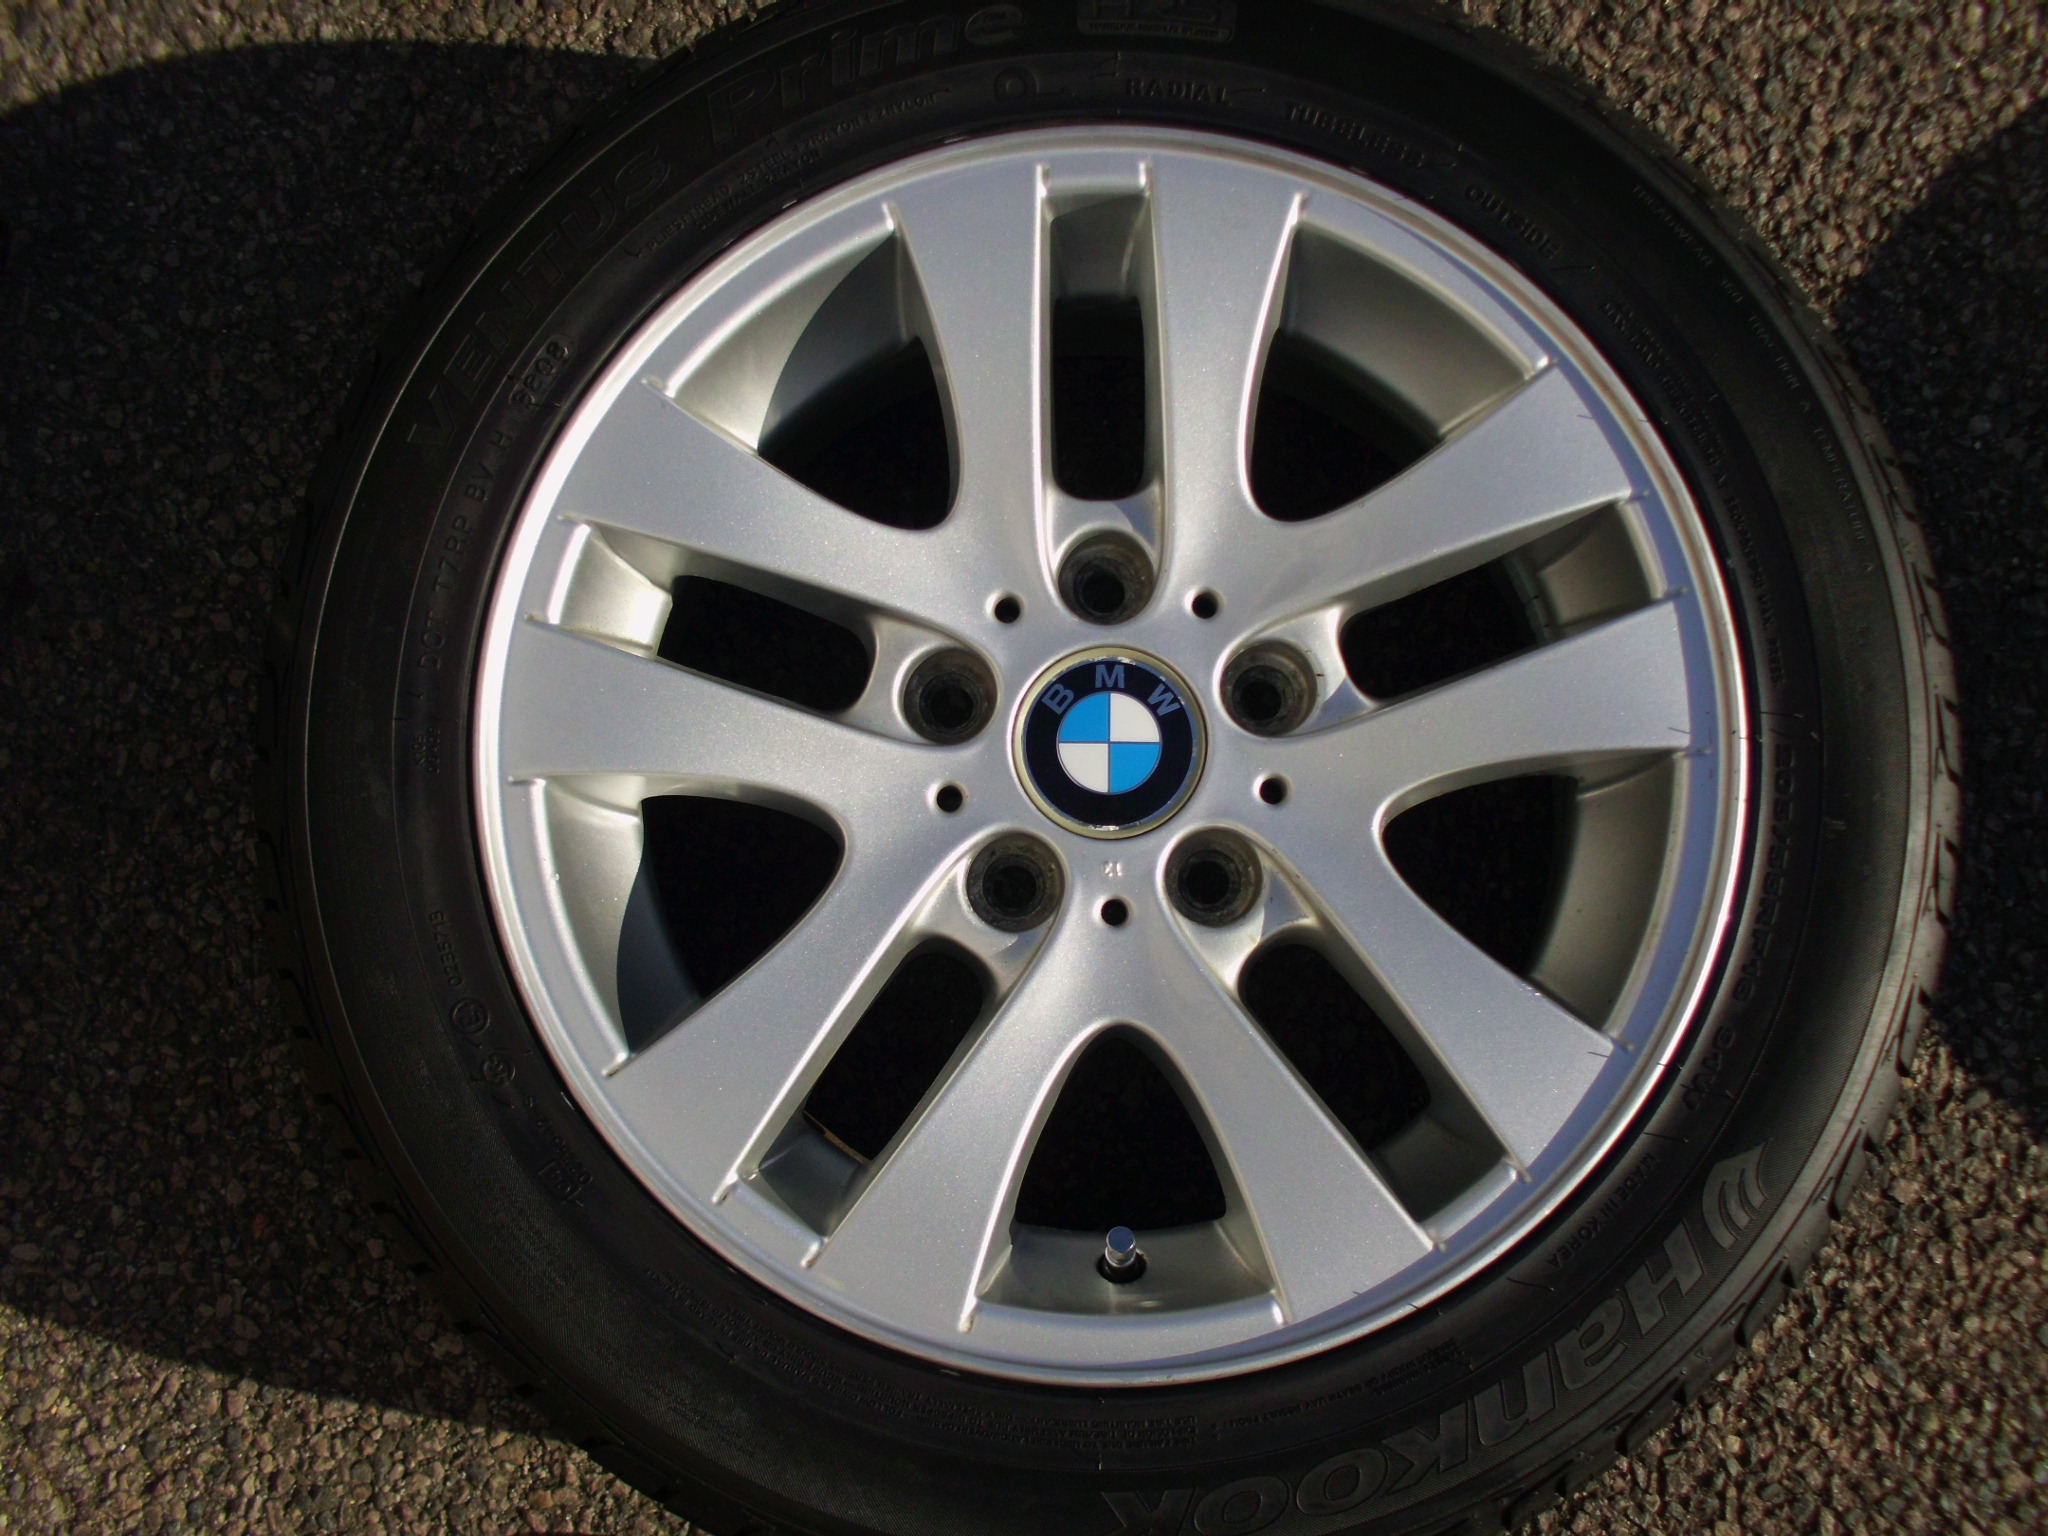 "USED SINGLE 16"" GENUINE BMW E90 STYLE 156 DOUBLE SPOKE ALLOY WHEEL ,VGC, INC VG HANKOOK 205/55/16 RUNFLAT TYRE"